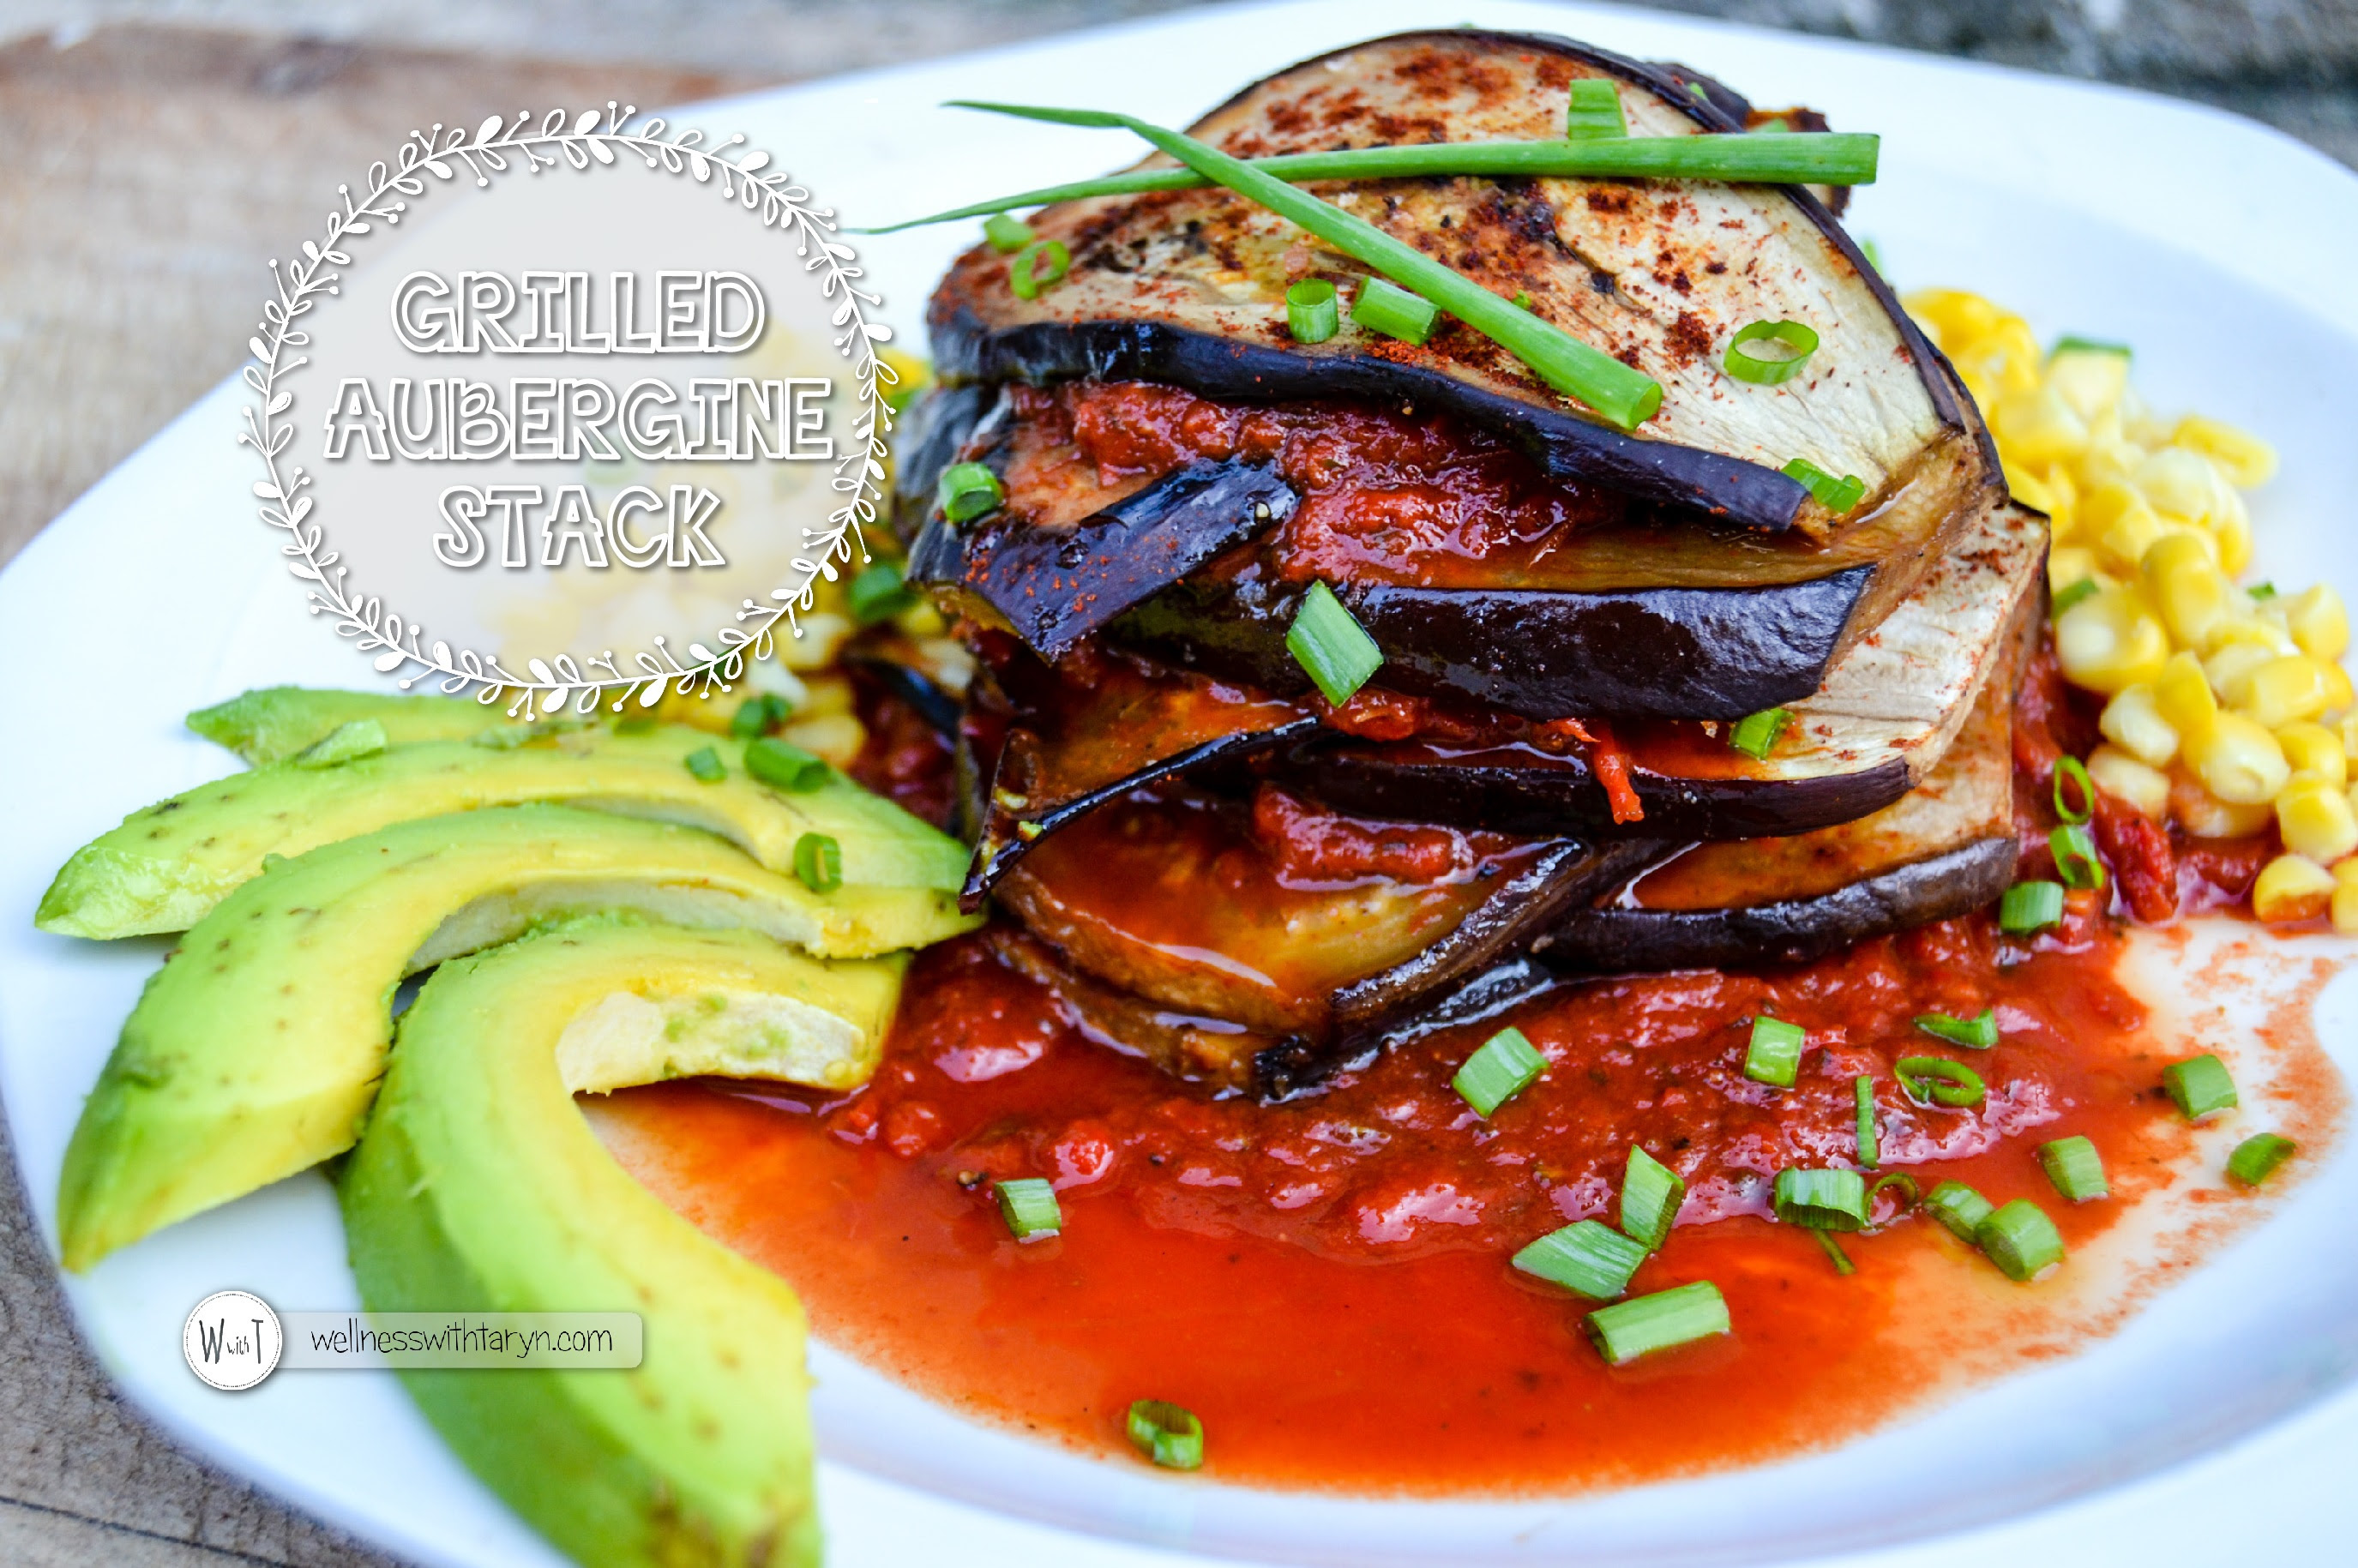 Grilled Aubergine Stack Wellness With Taryn